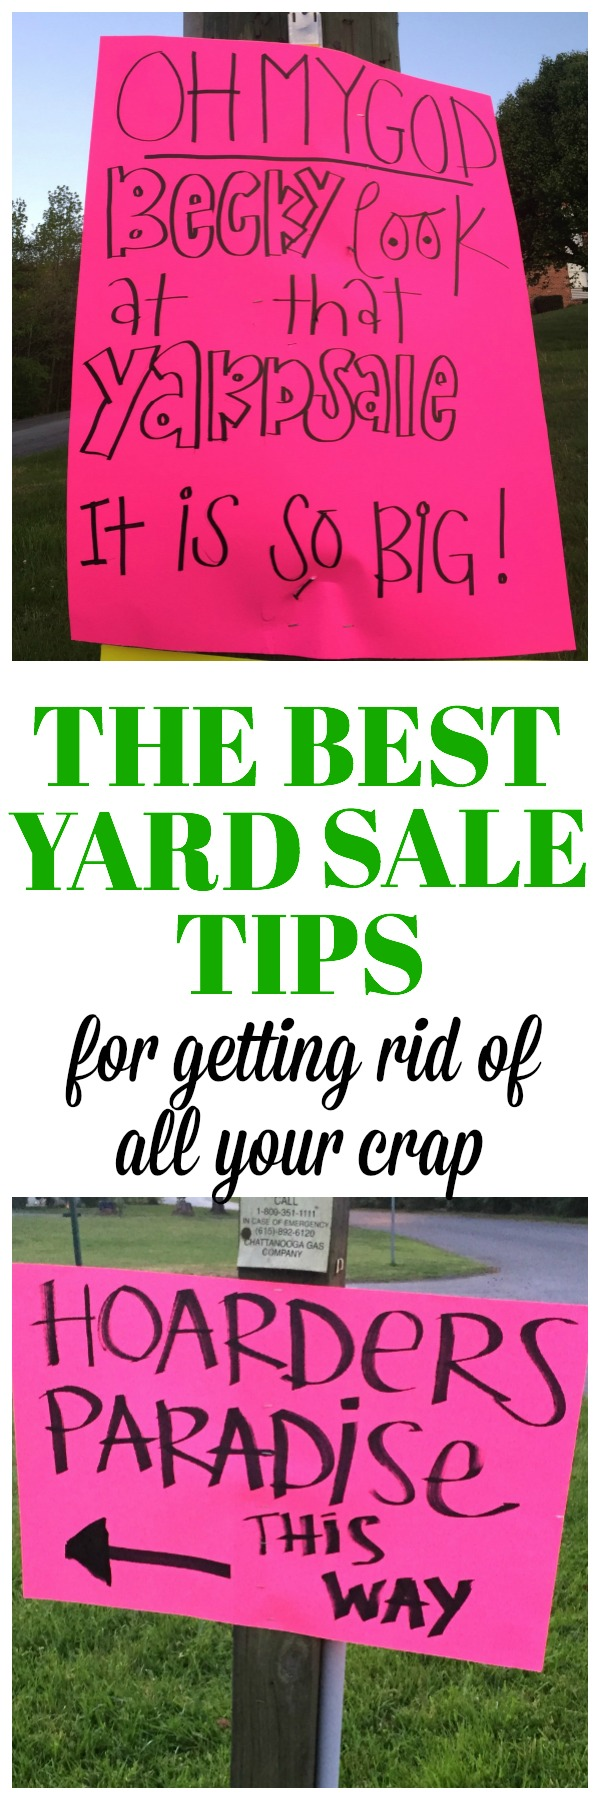 The Best Yard Sale Tips To Get Rid of All Your Junk